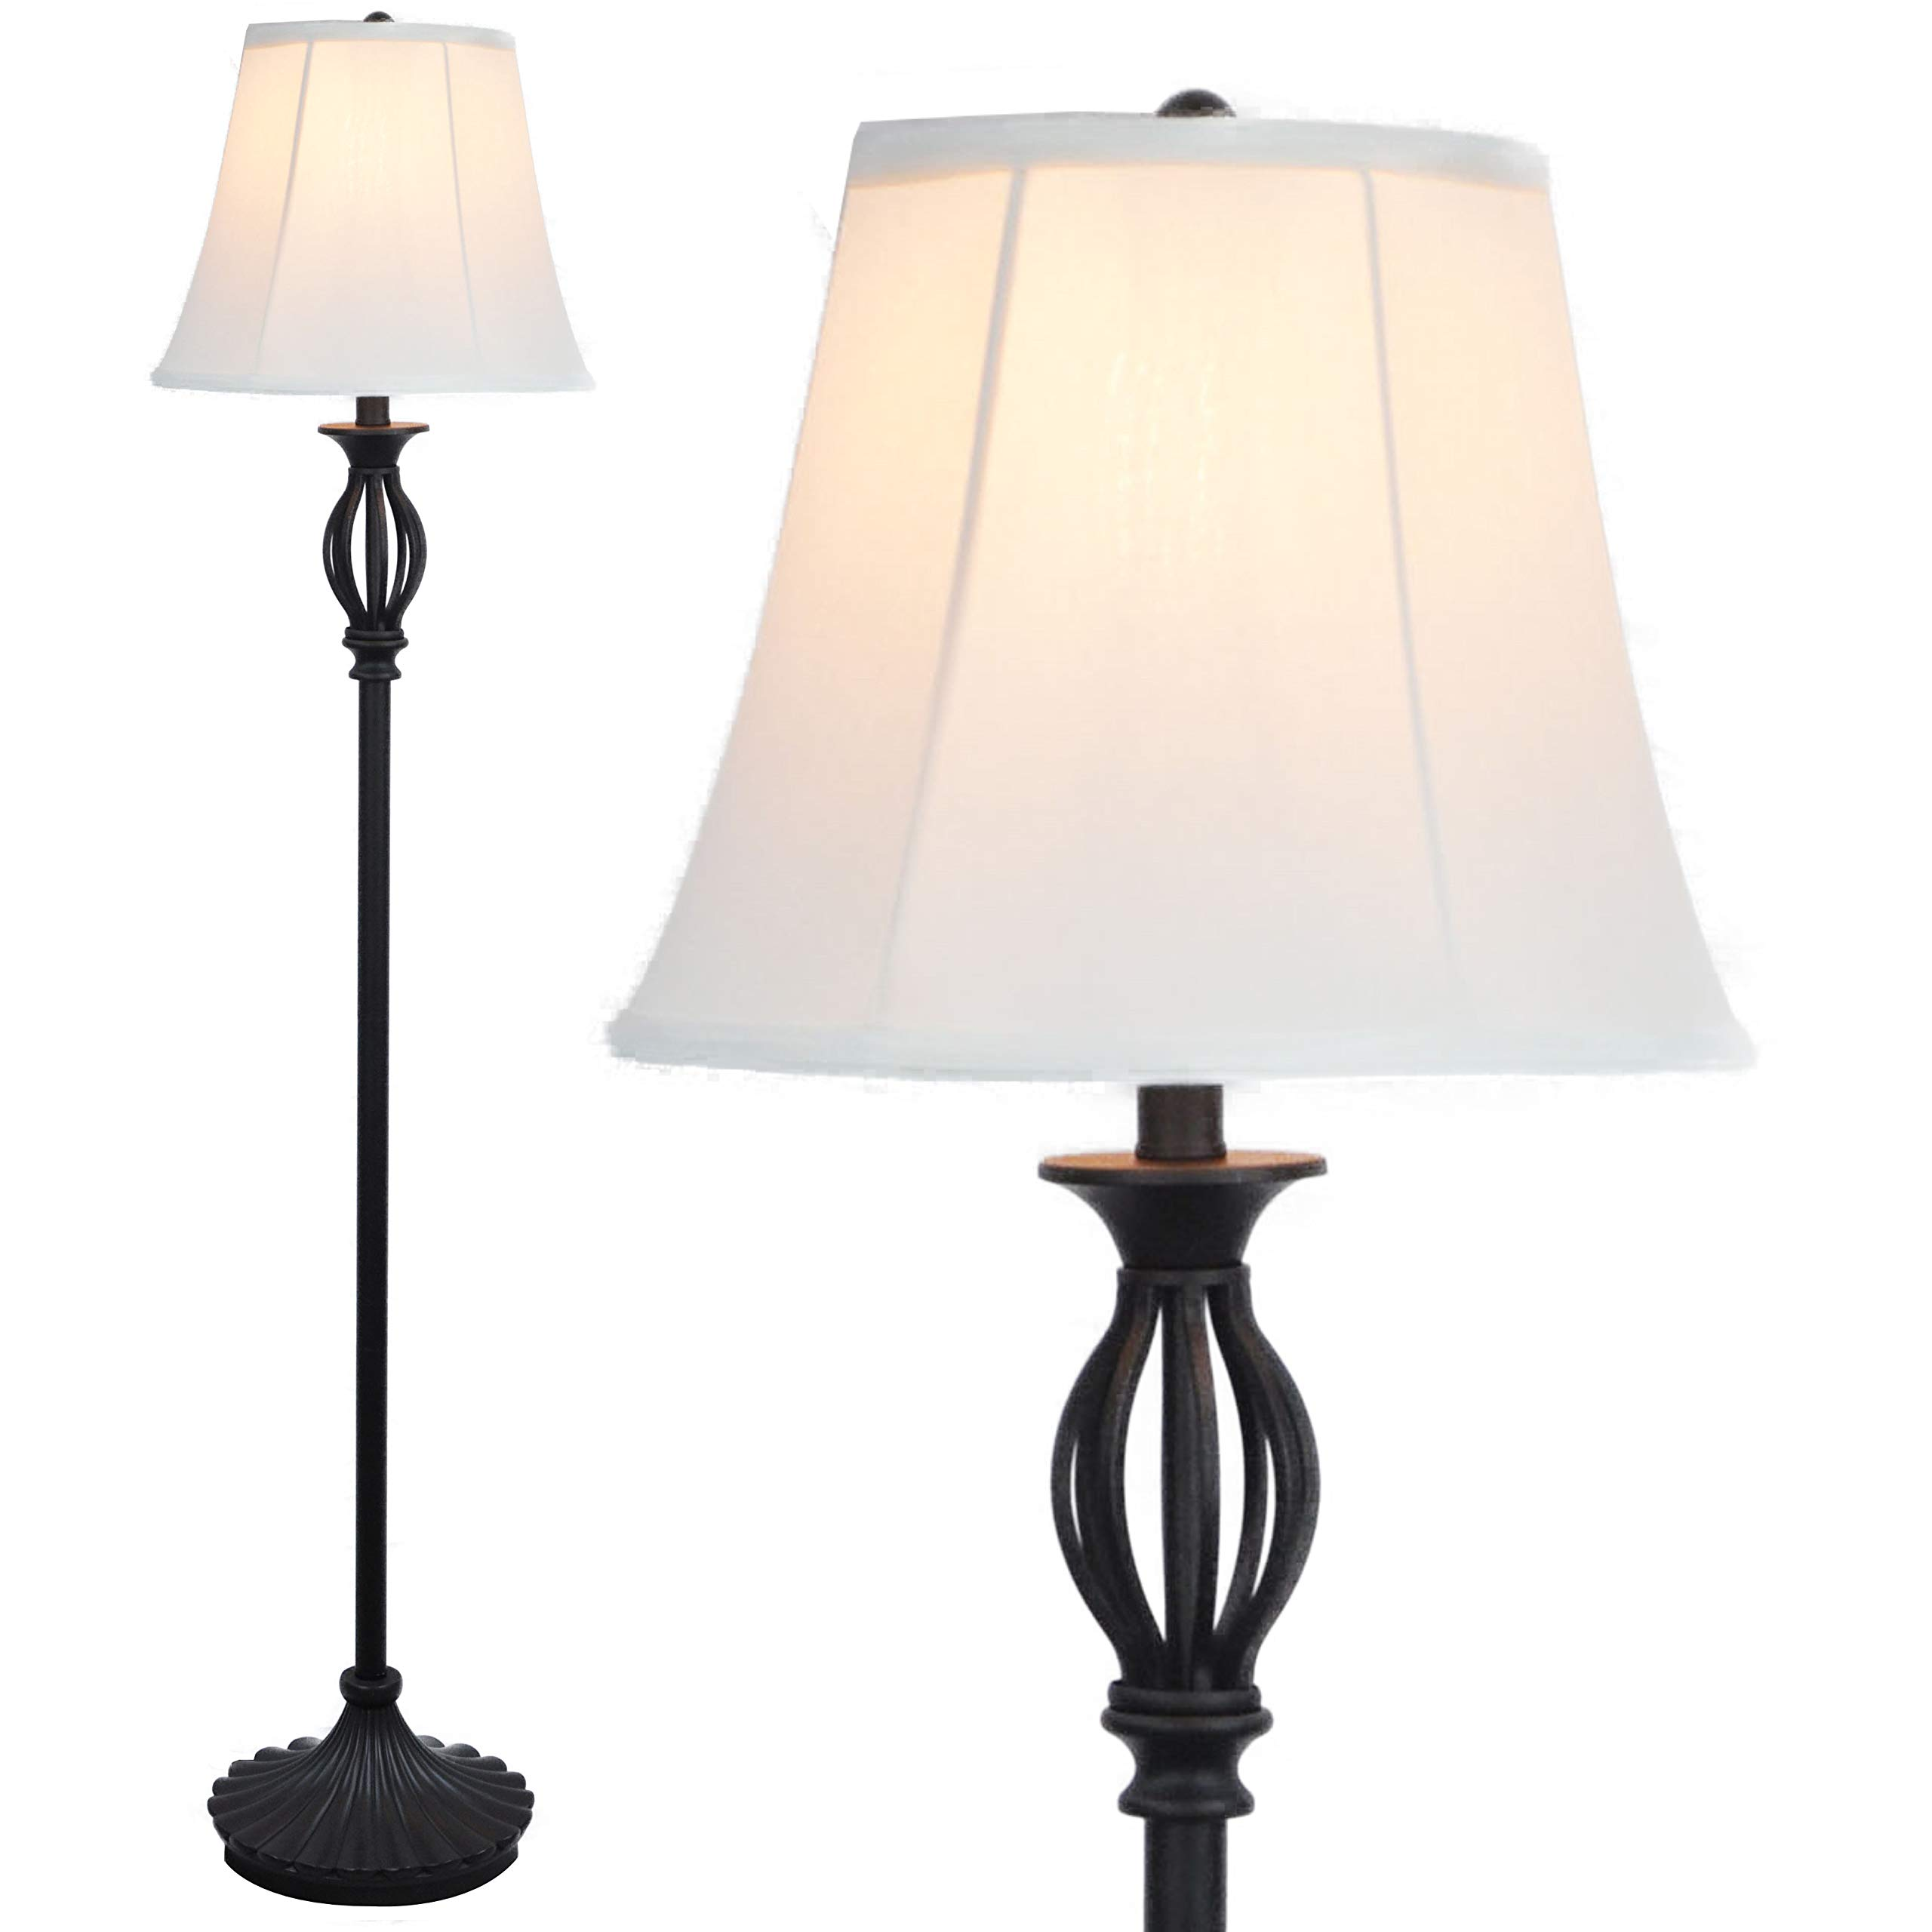 Floor Lamp by Lightaccents - Traditional Iron Scrollwork Standing Lamp with Shade, Lamps for Living Room Bronze with Fabric Shade - Floor Lamps for Living Room